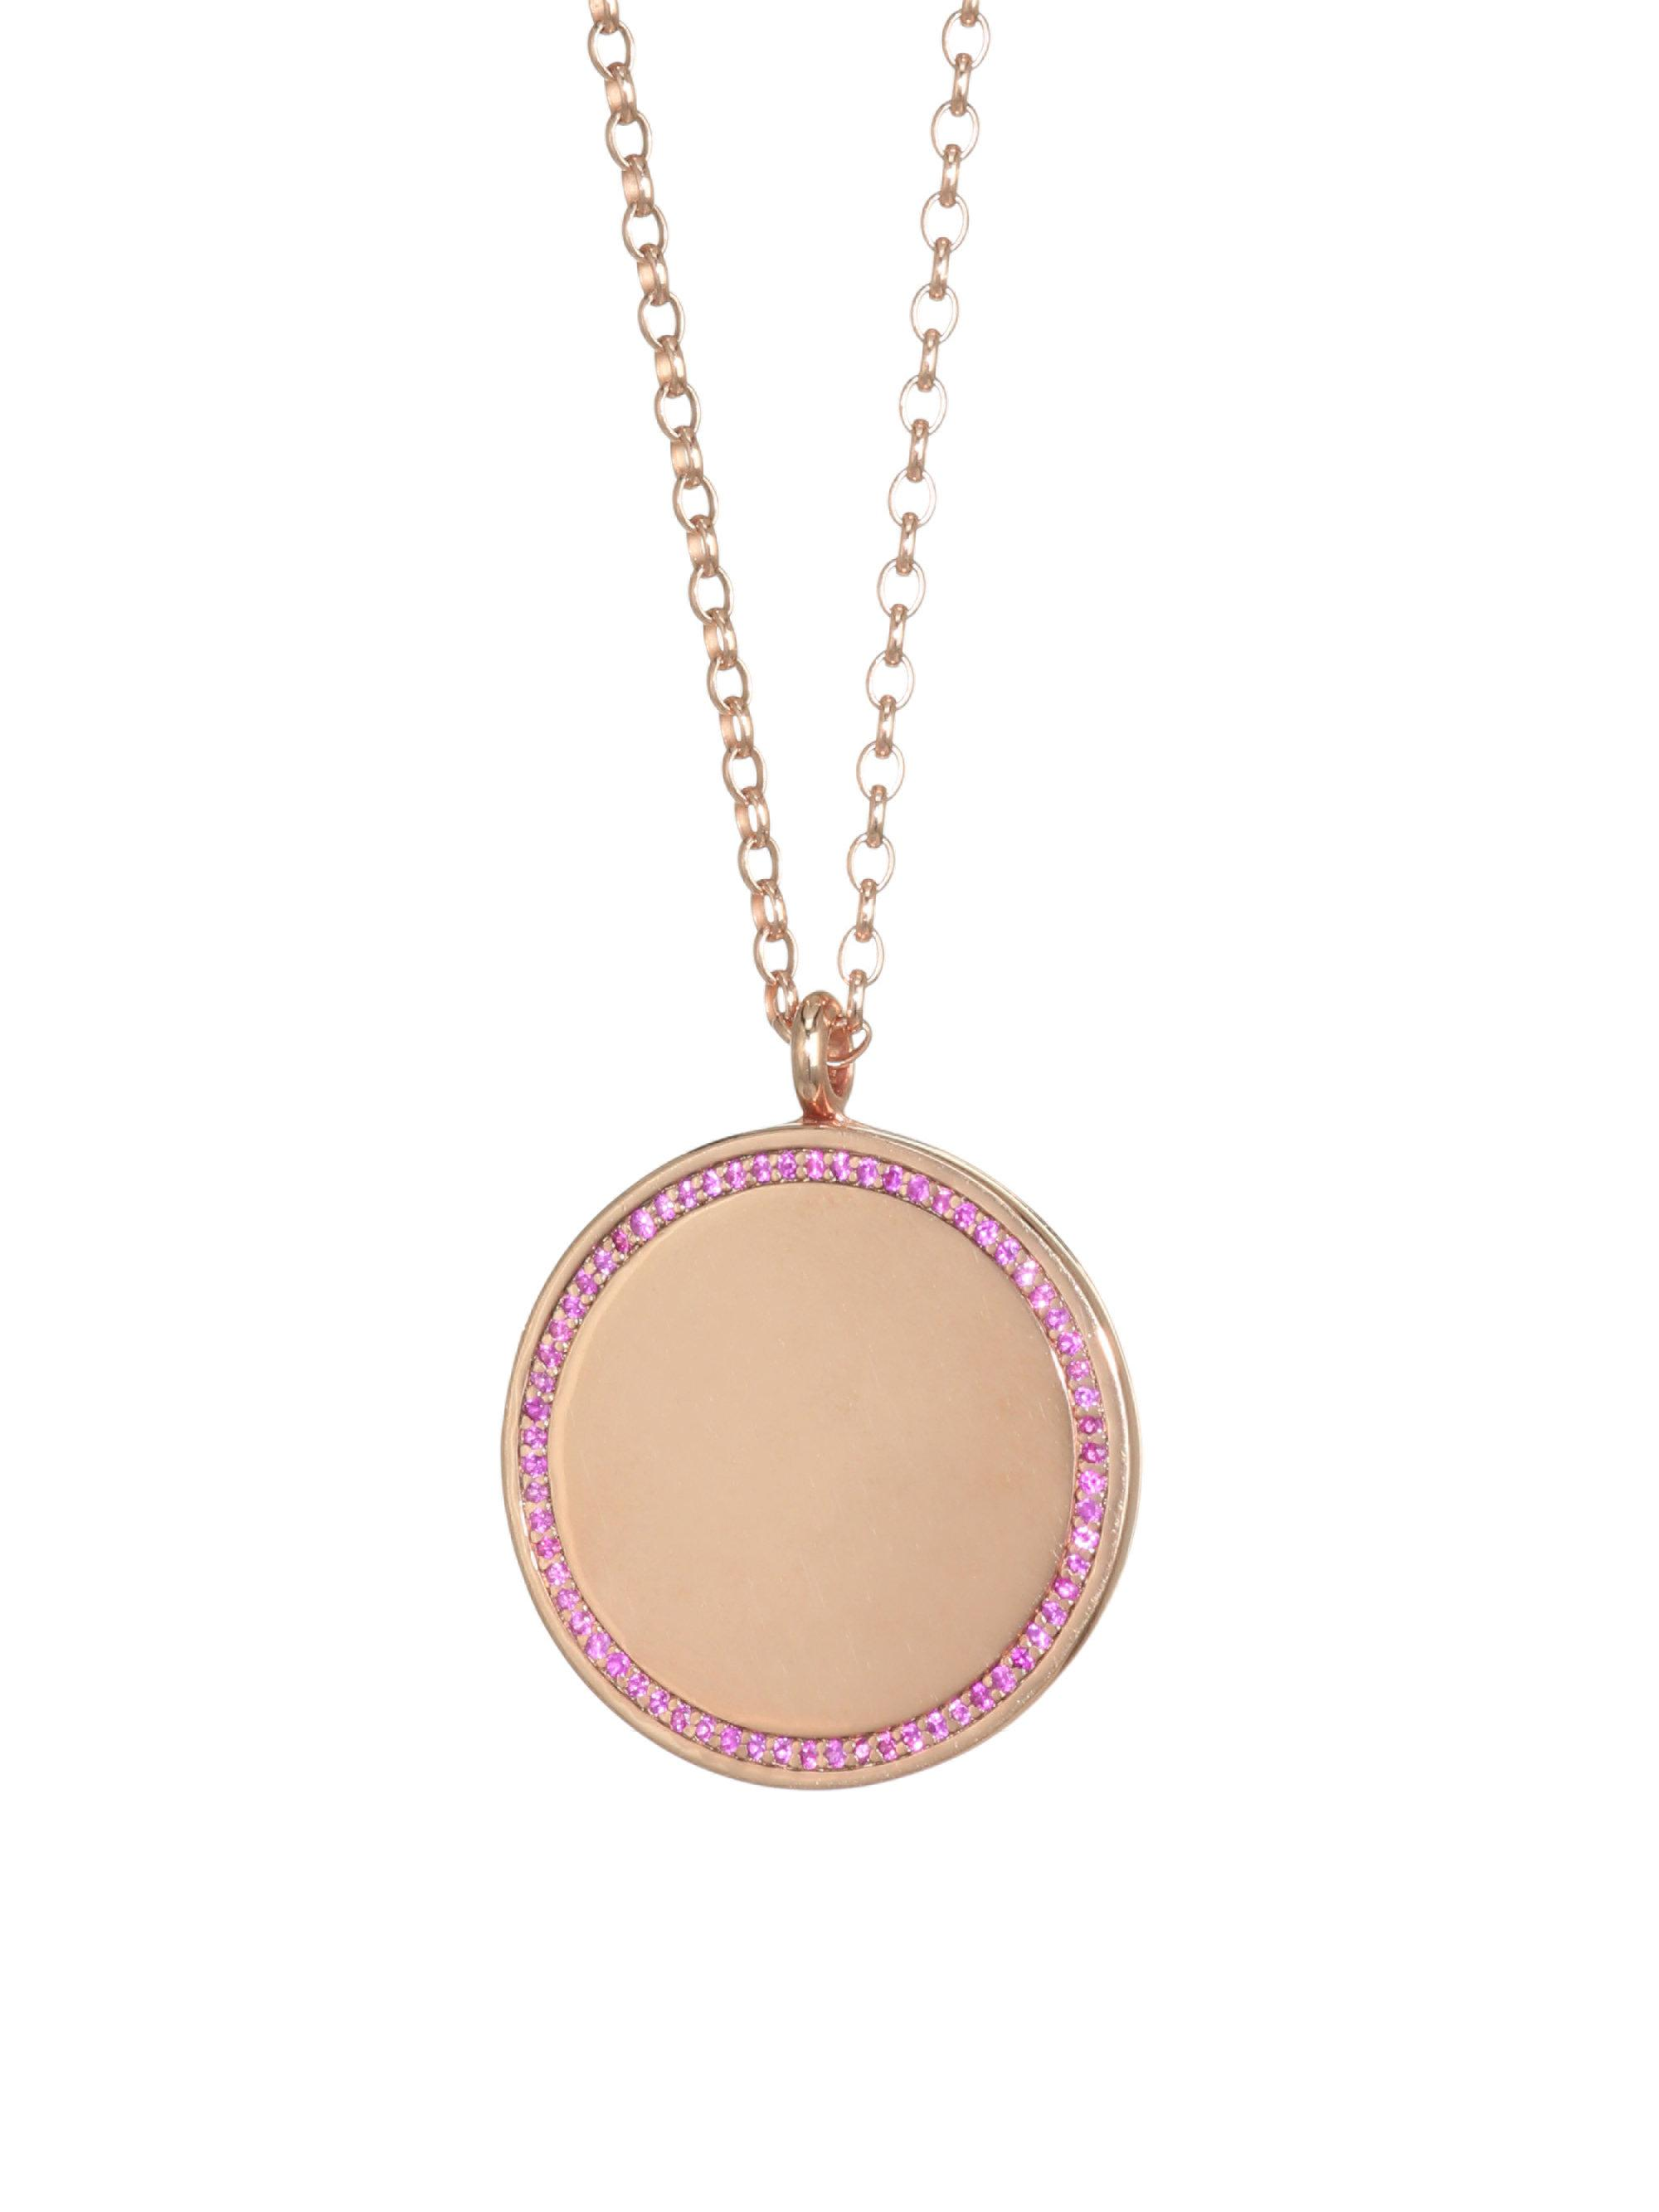 station rose gold rhinestones locket chain large steel ball with matching product cz lockets stainless floating charm